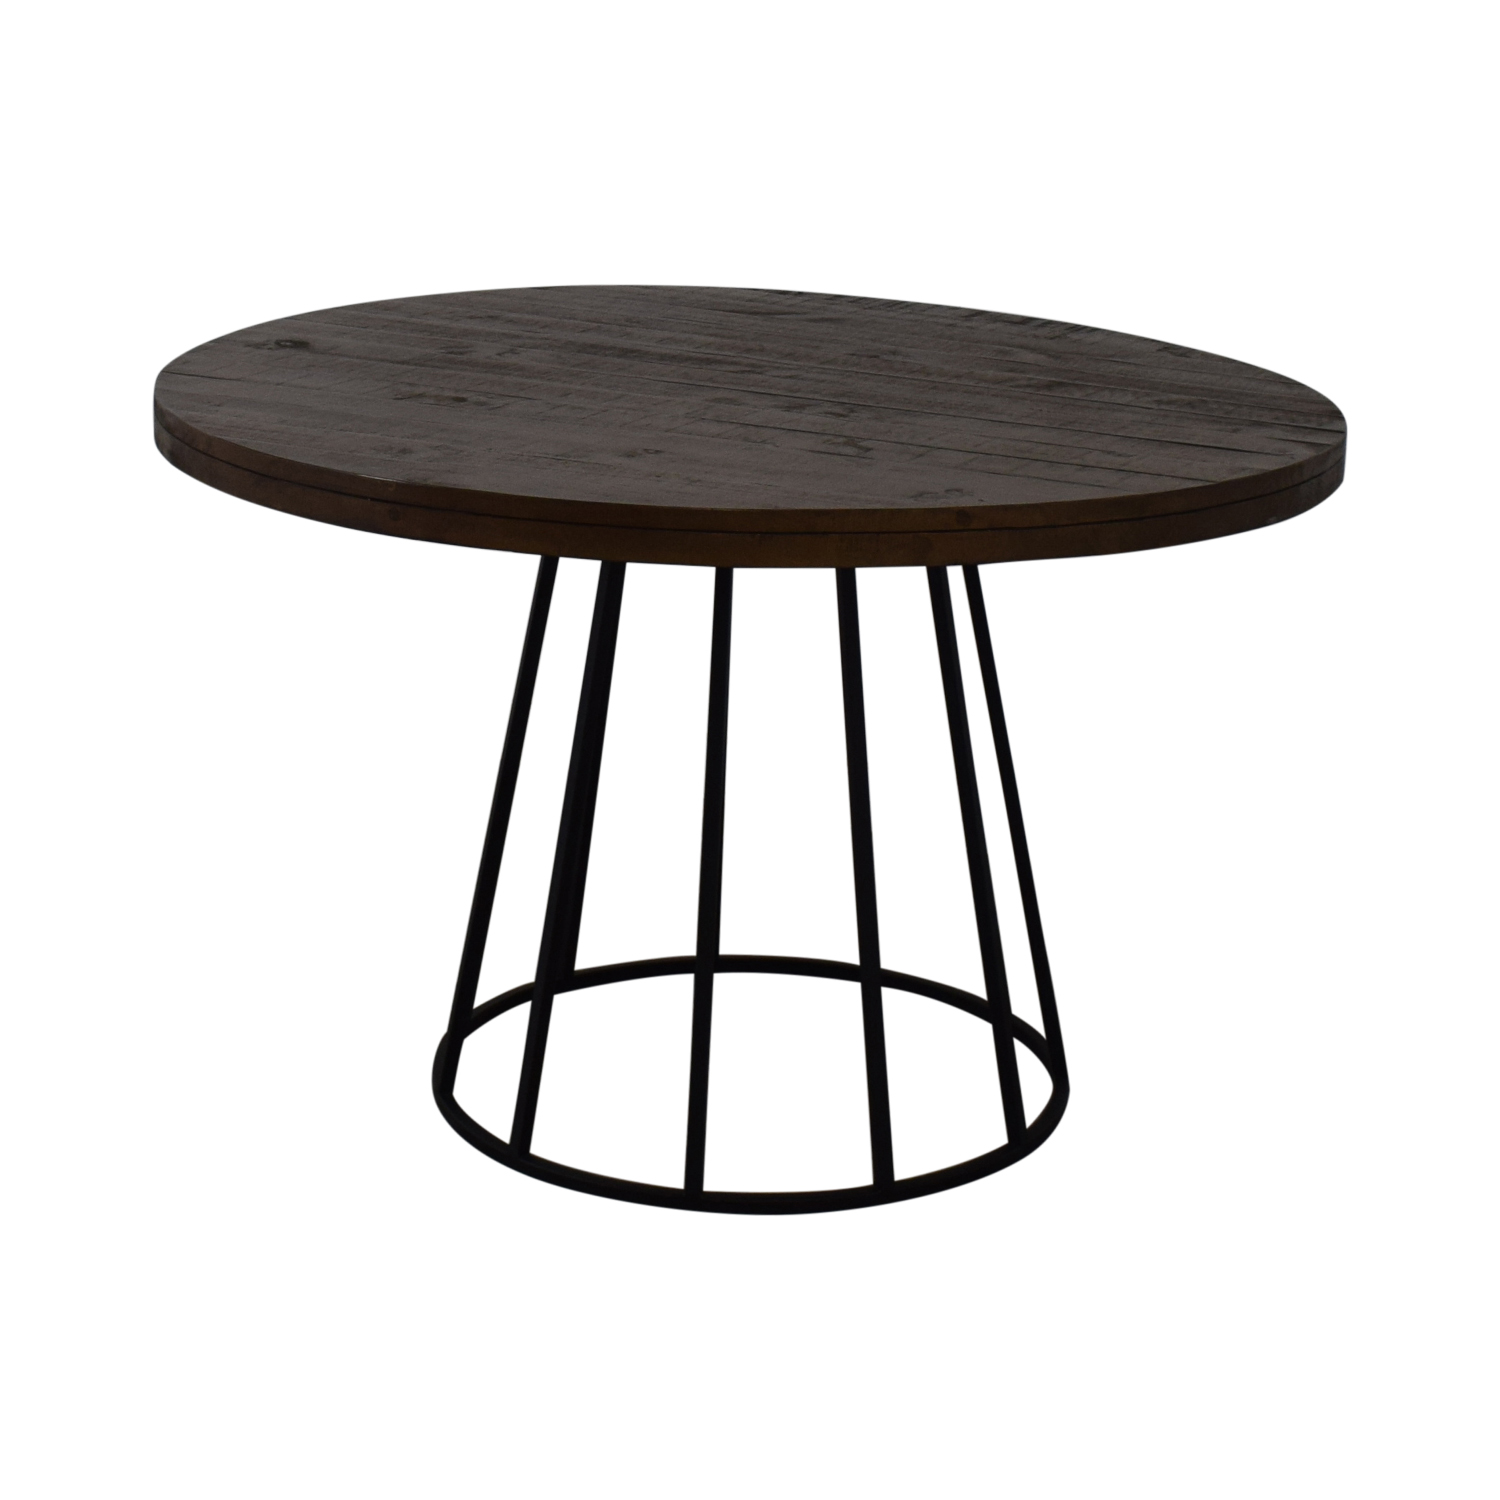 Mercury Row Mercury Row Morena Dining Table brown